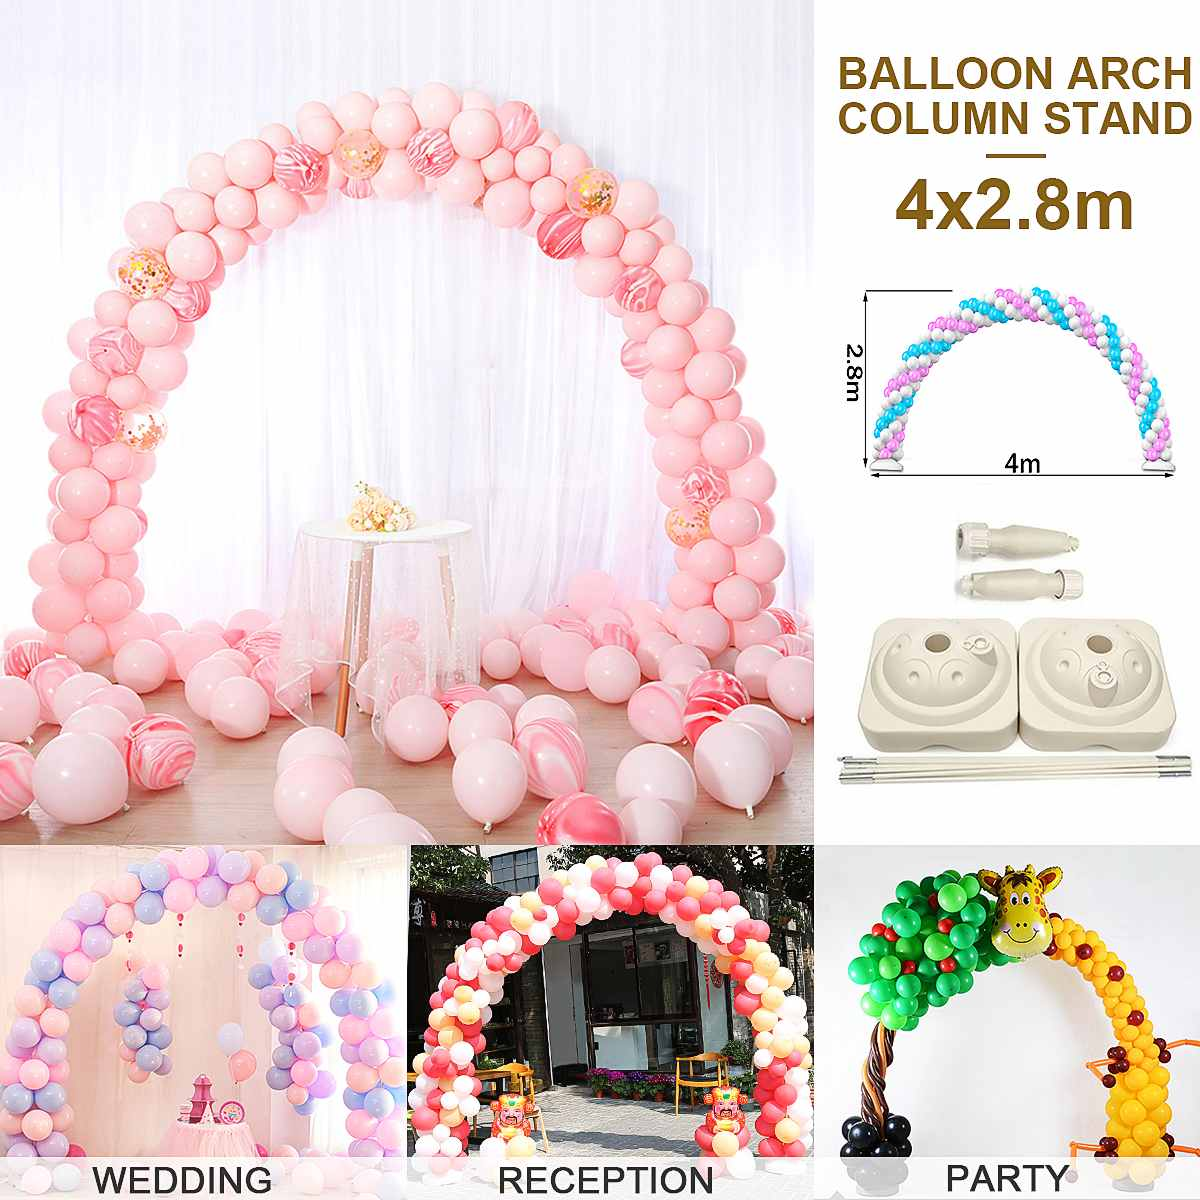 4M Large Balloon Arch Stand Base Pot Kit Clip Connector Adjustable Wedding Party Arches <font><b>Support</b></font> Display DIY Decoration Supplies image